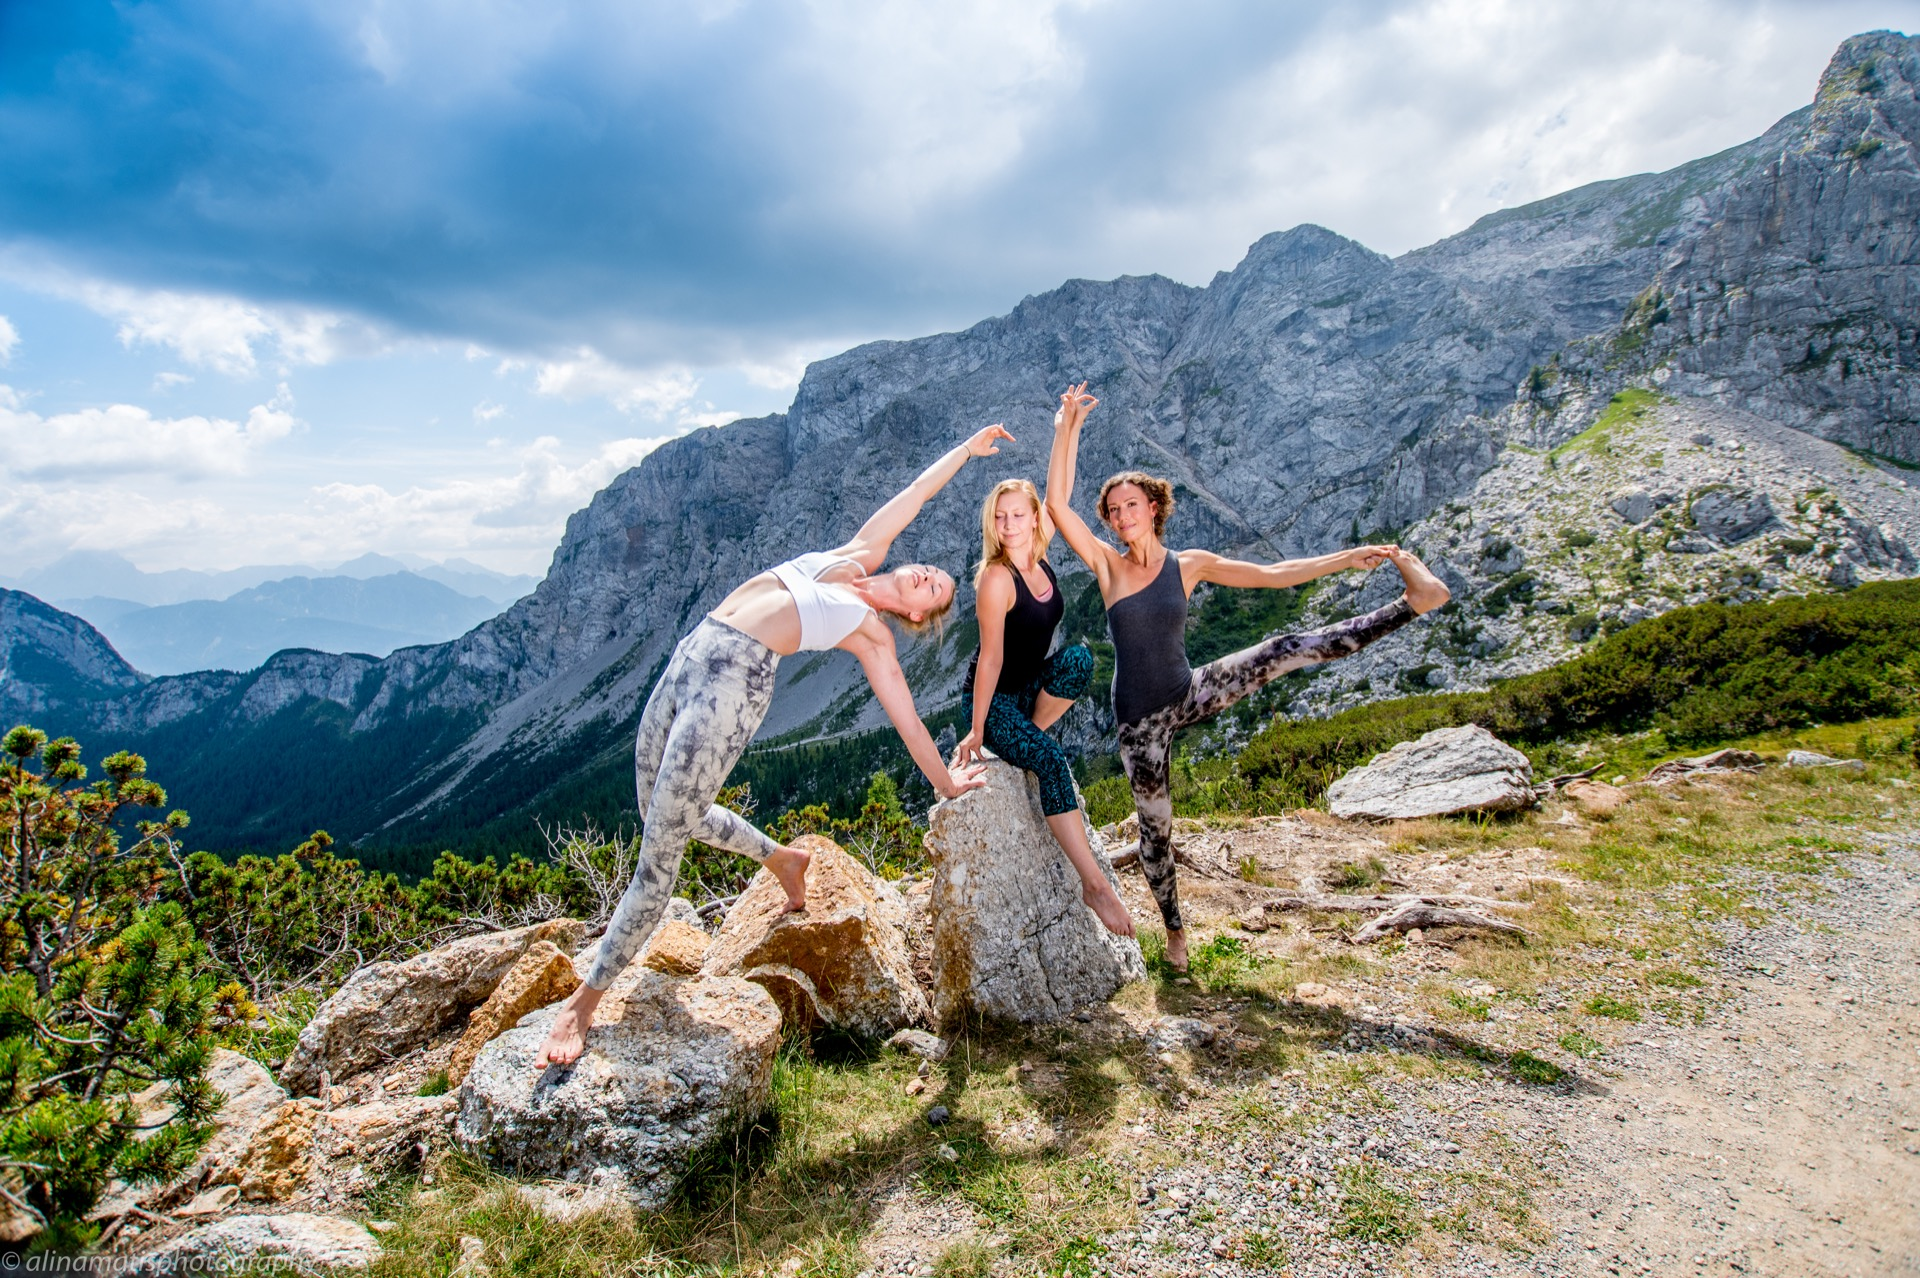 Hie-Kim-Friends-2018-Yoga-Retreat-Alina-Matis-Photography-161 - Hie Kim Yoga - Yoga Retreat - Yoga Workshops und Reisen